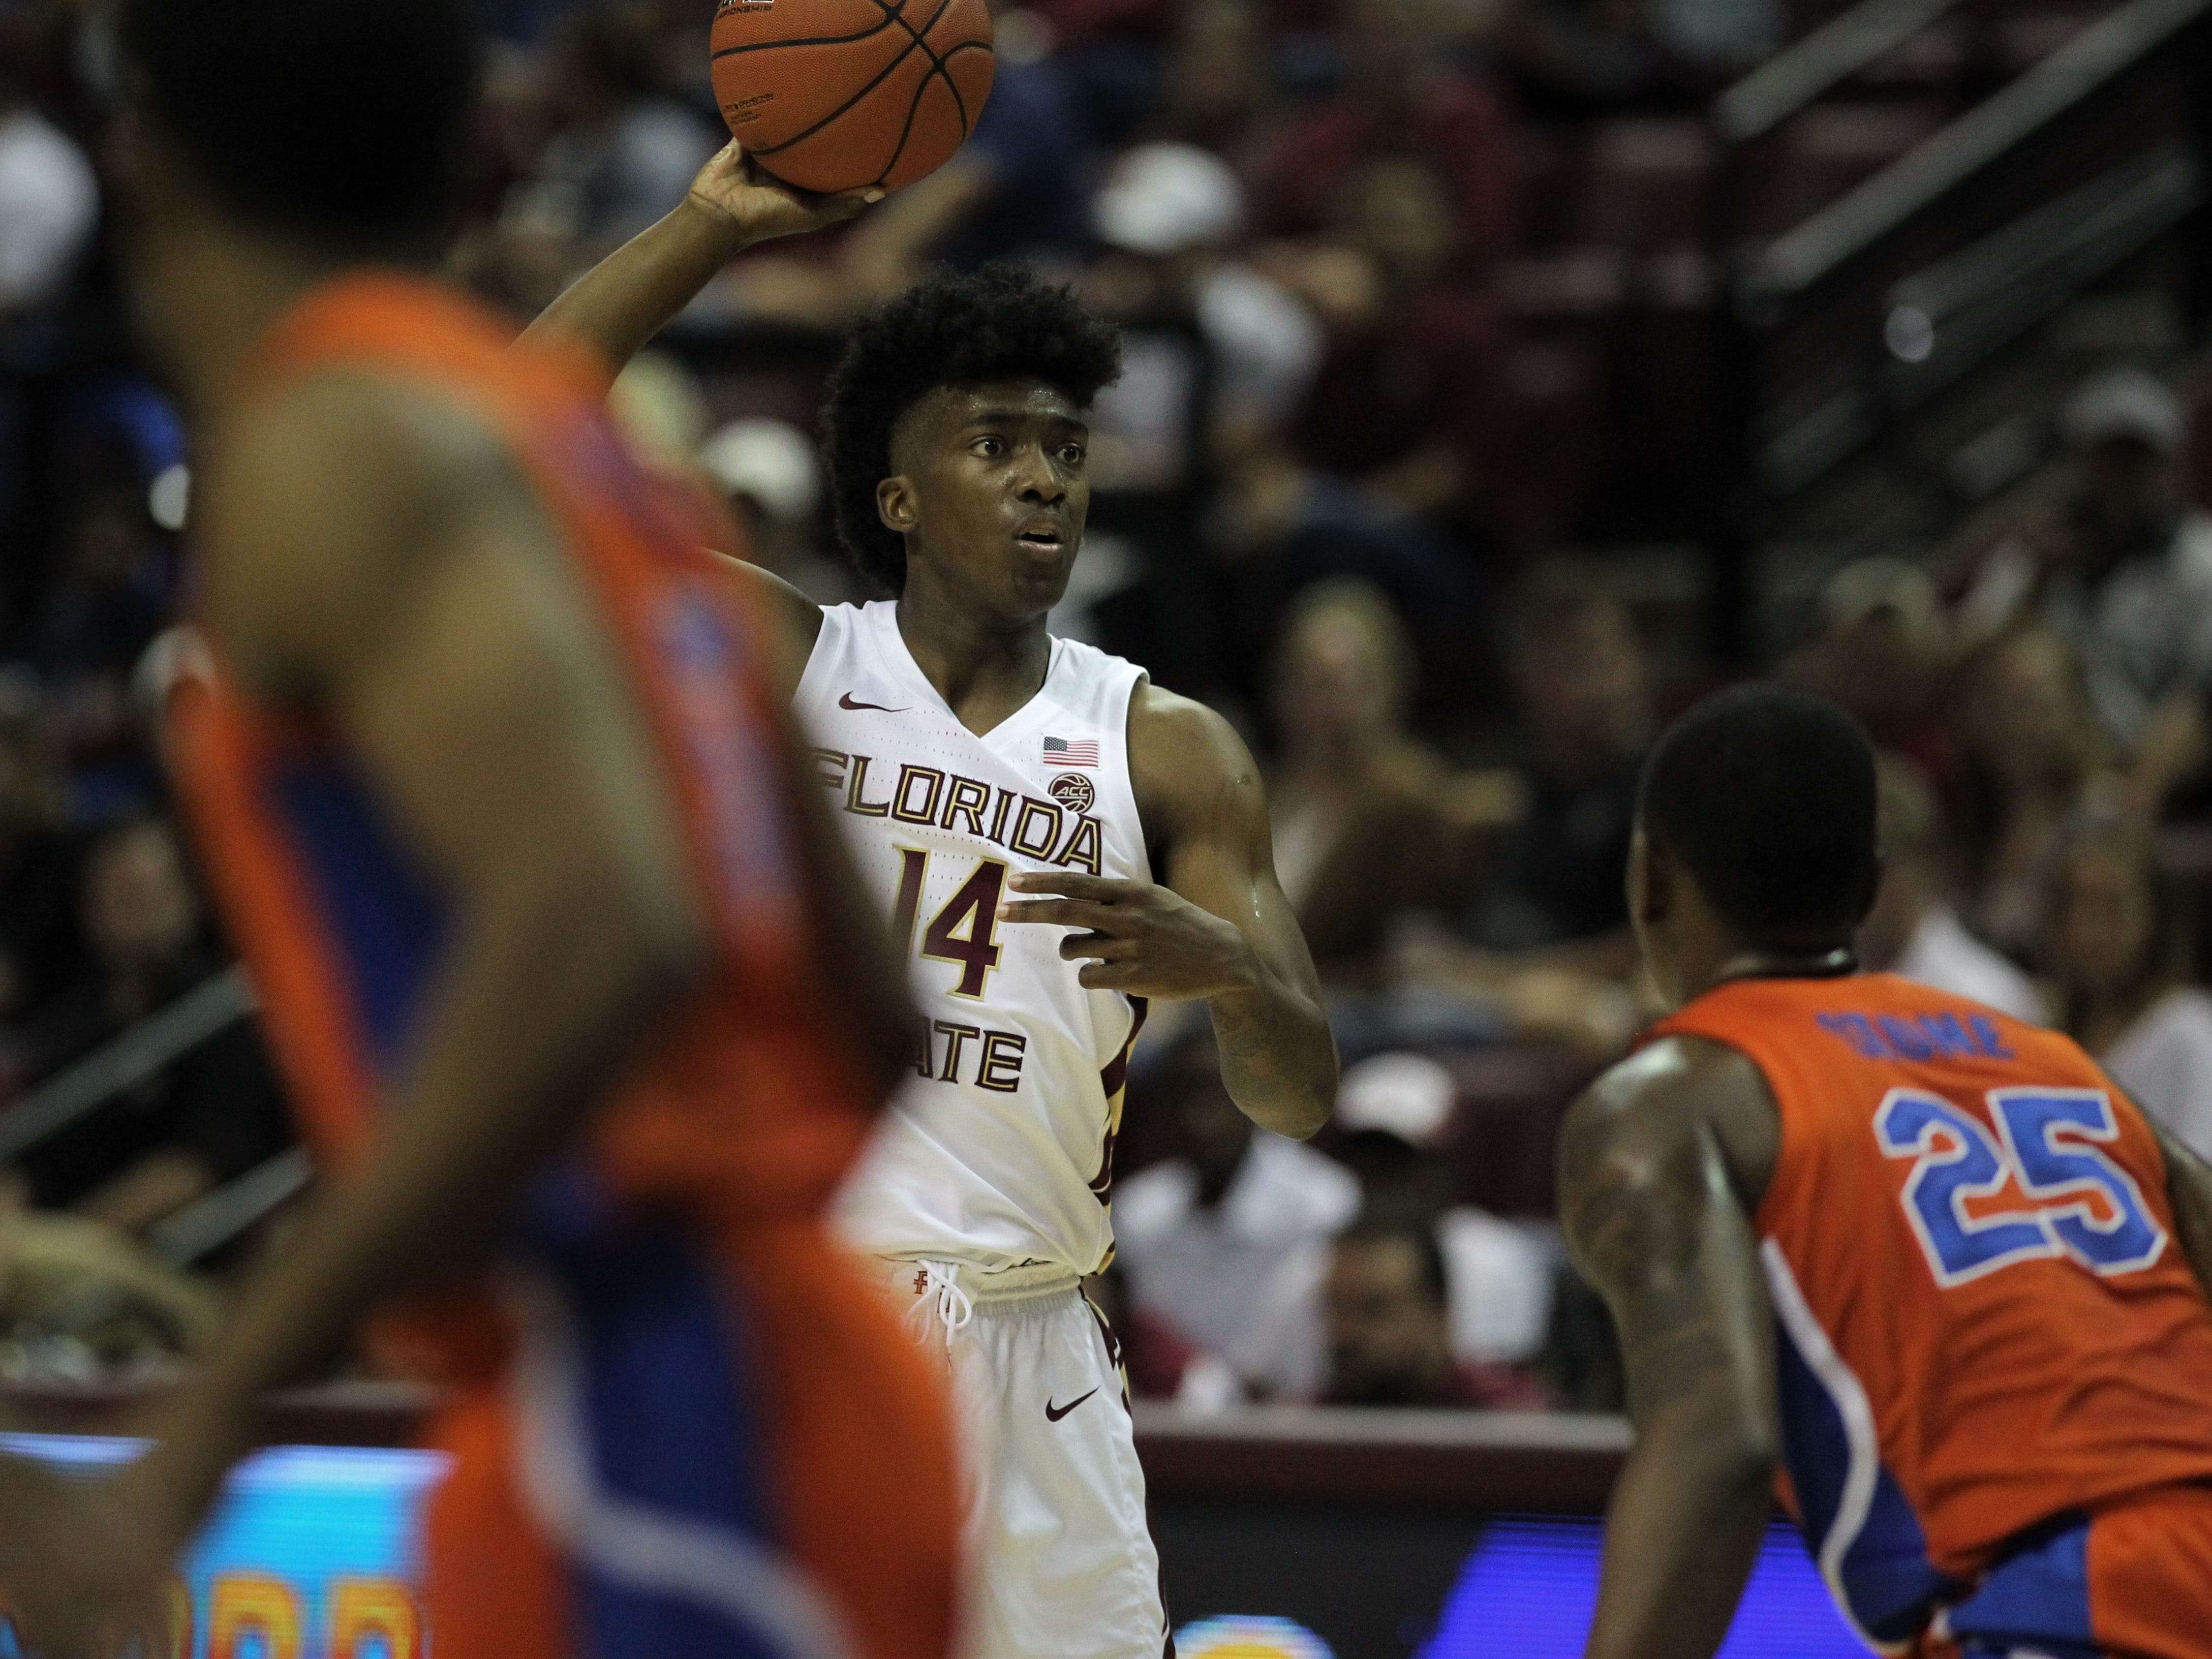 Florida State's Terance Mann looks for a pass during the Sunshine Showdown game against Florida on Tuesday at the Tucker Civic Center.